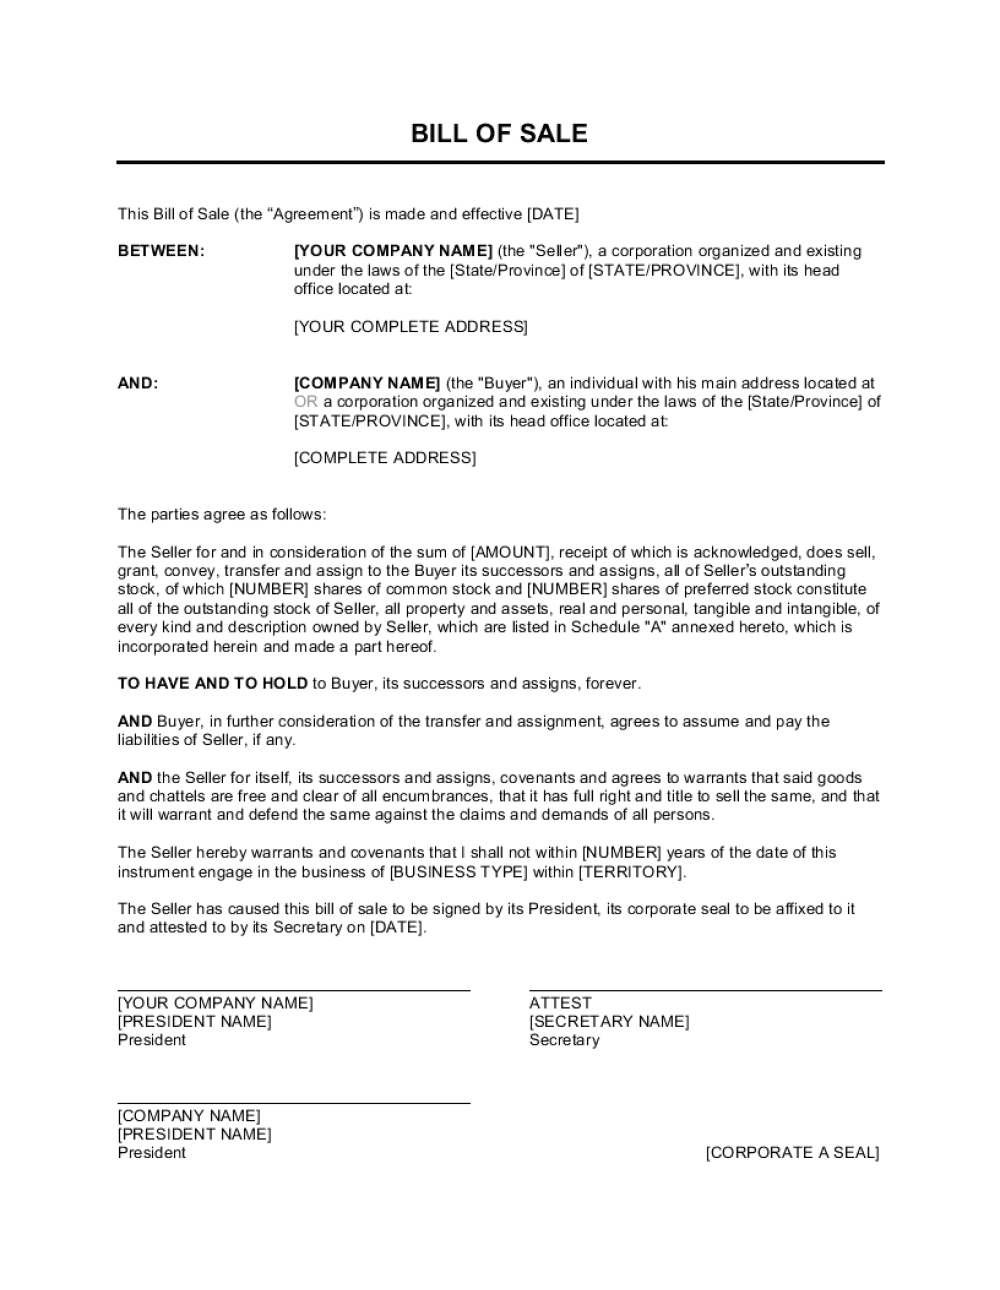 Bill Of Sale For Corporations Template |Business-In-A-Box™